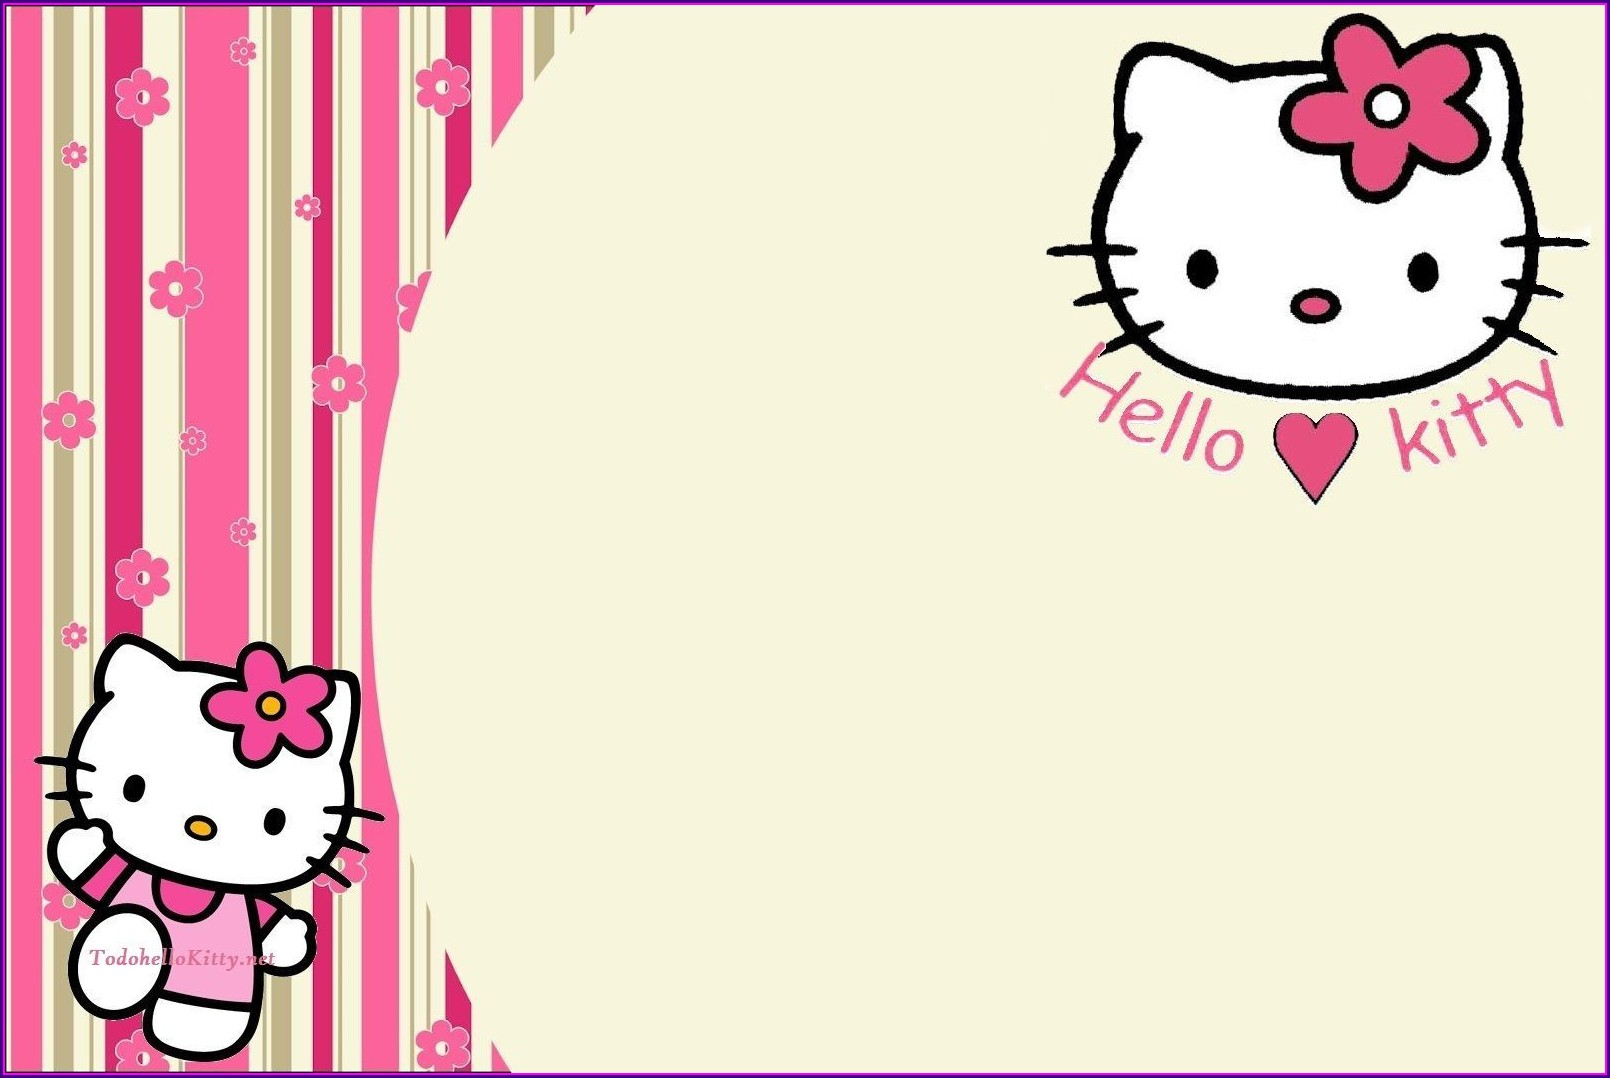 Hello Kitty Invitation Card Background